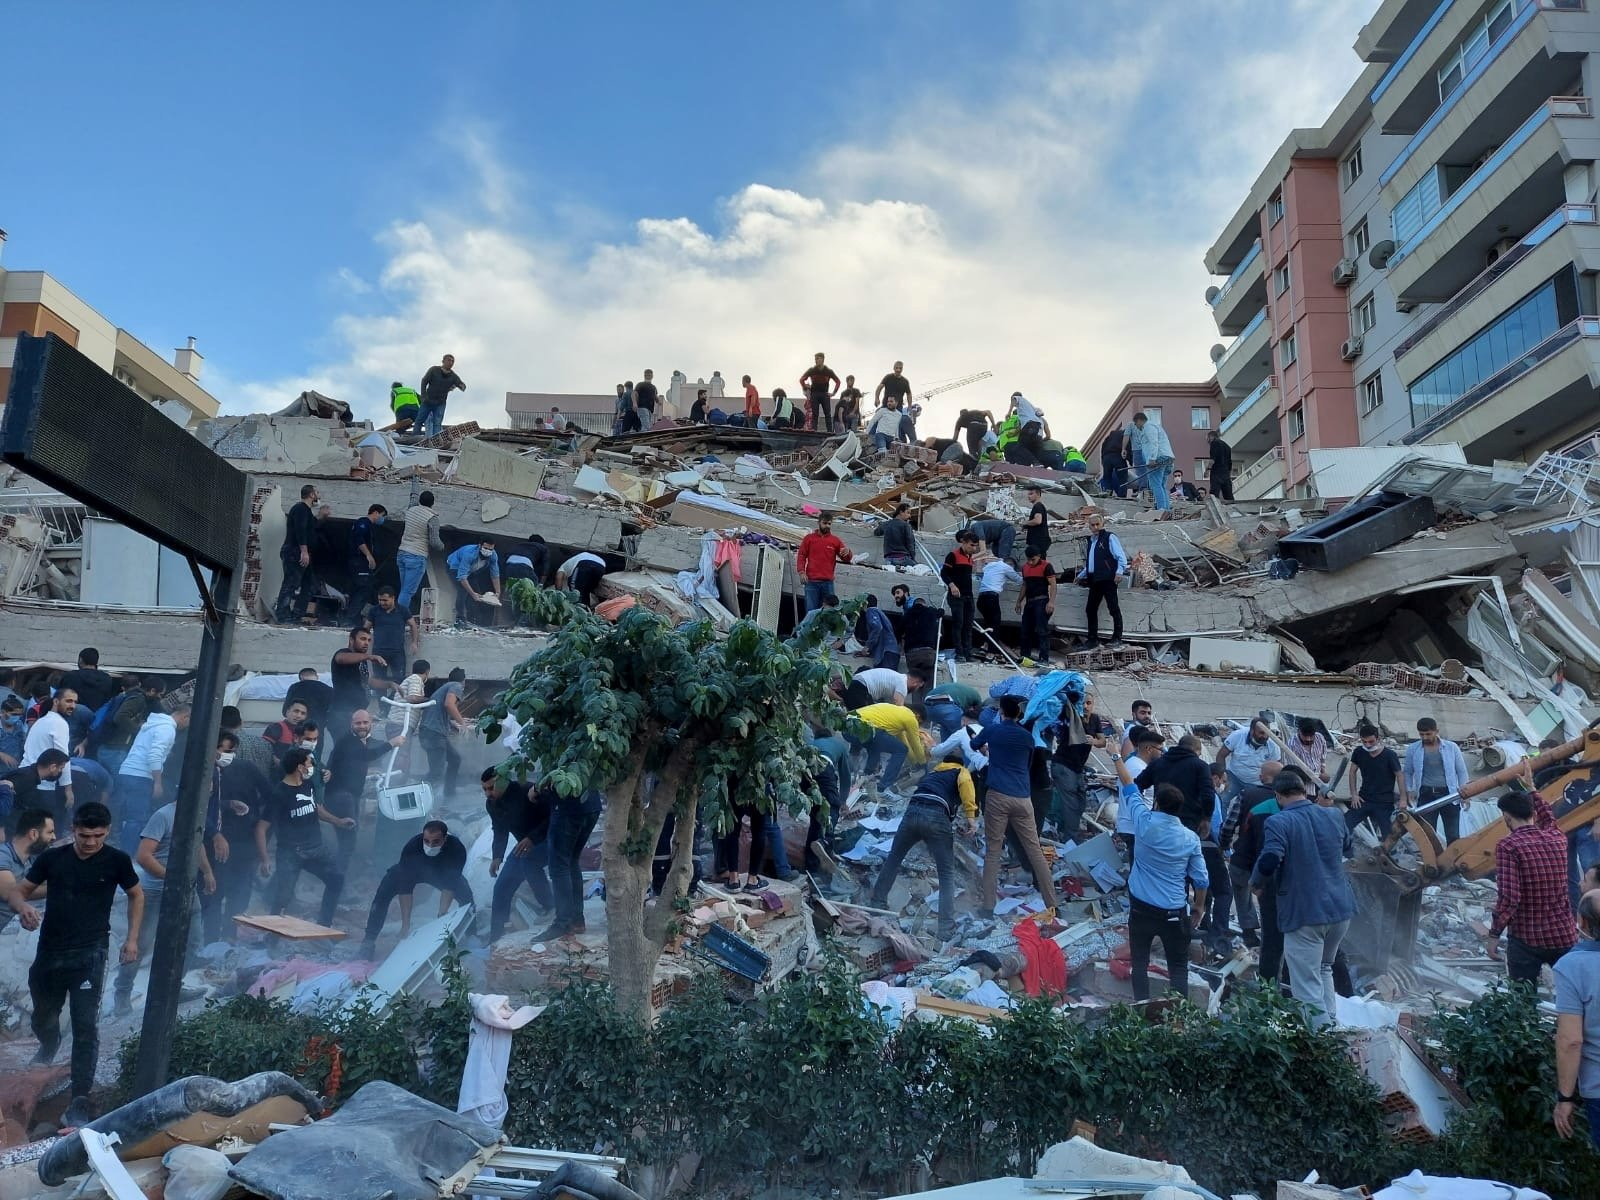 Locals and officials search for survivors at a collapsed building, in Izmir, western Turkey, Oct. 30, 2020. (REUTERS PHOTO)